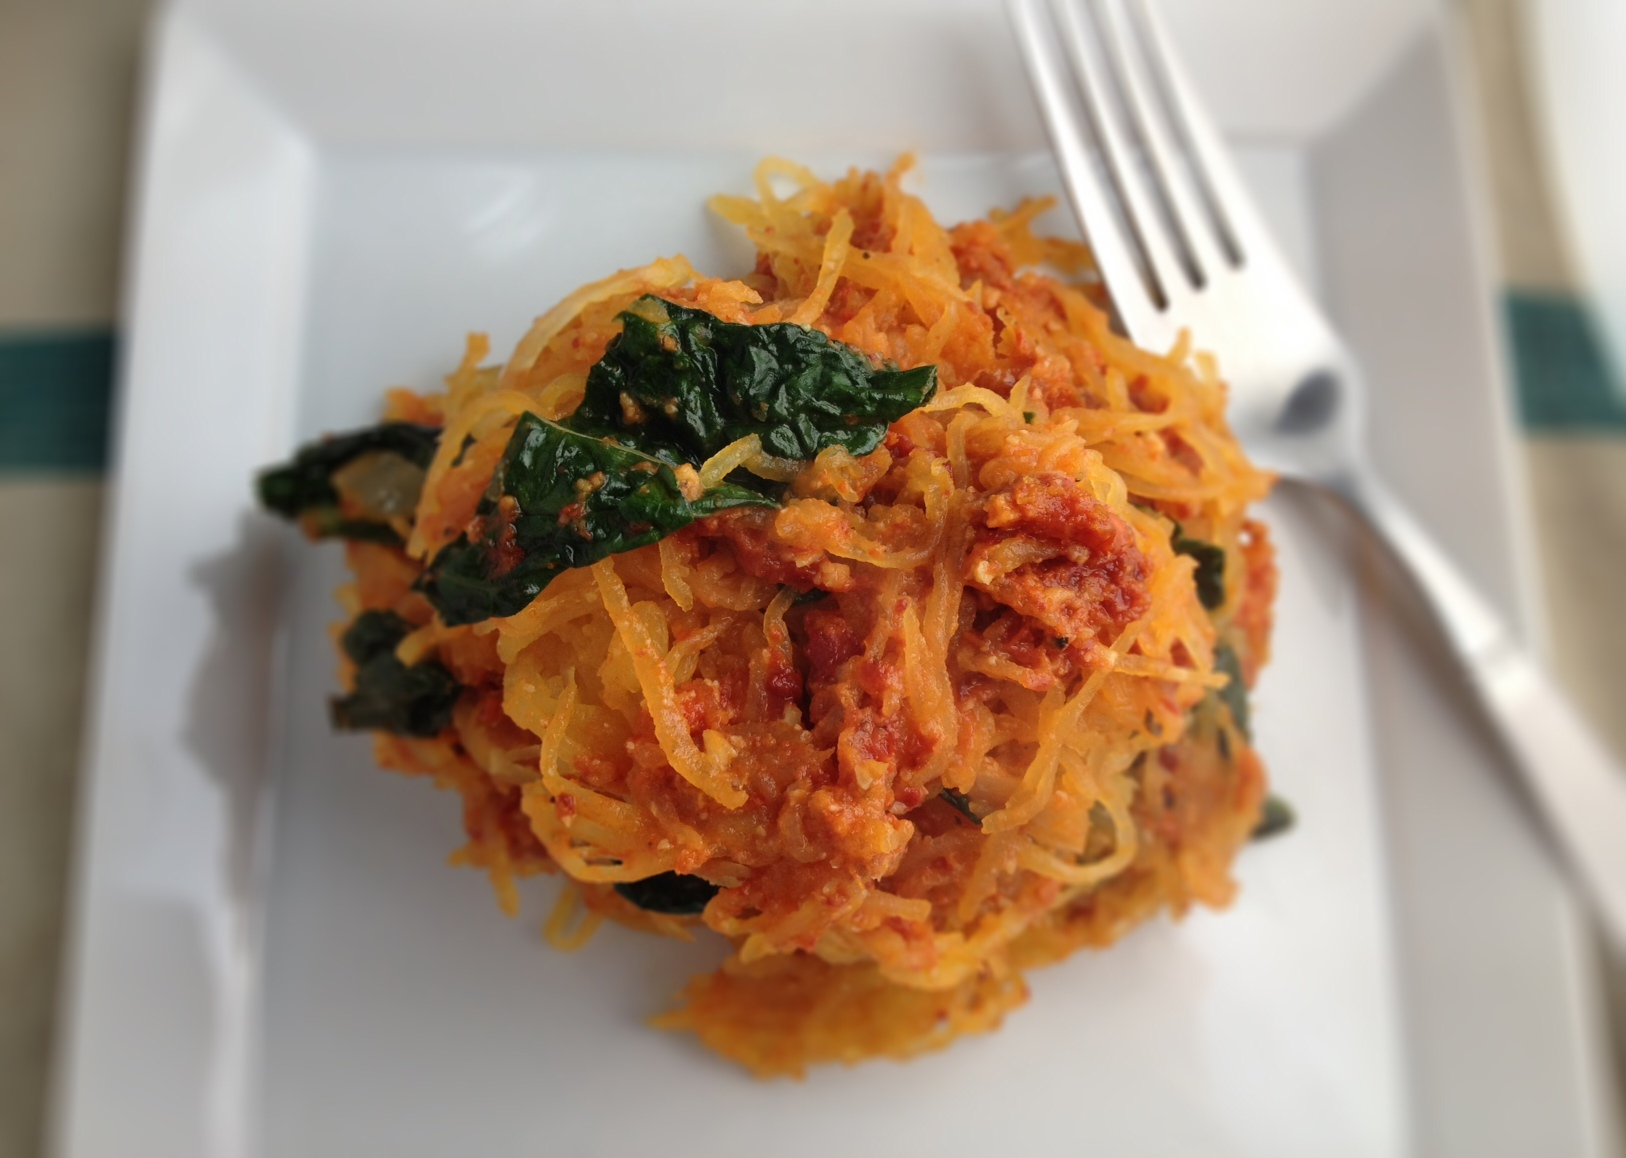 spaghetti squash with sun dried tomato pesto - Dishing Up the Dirt